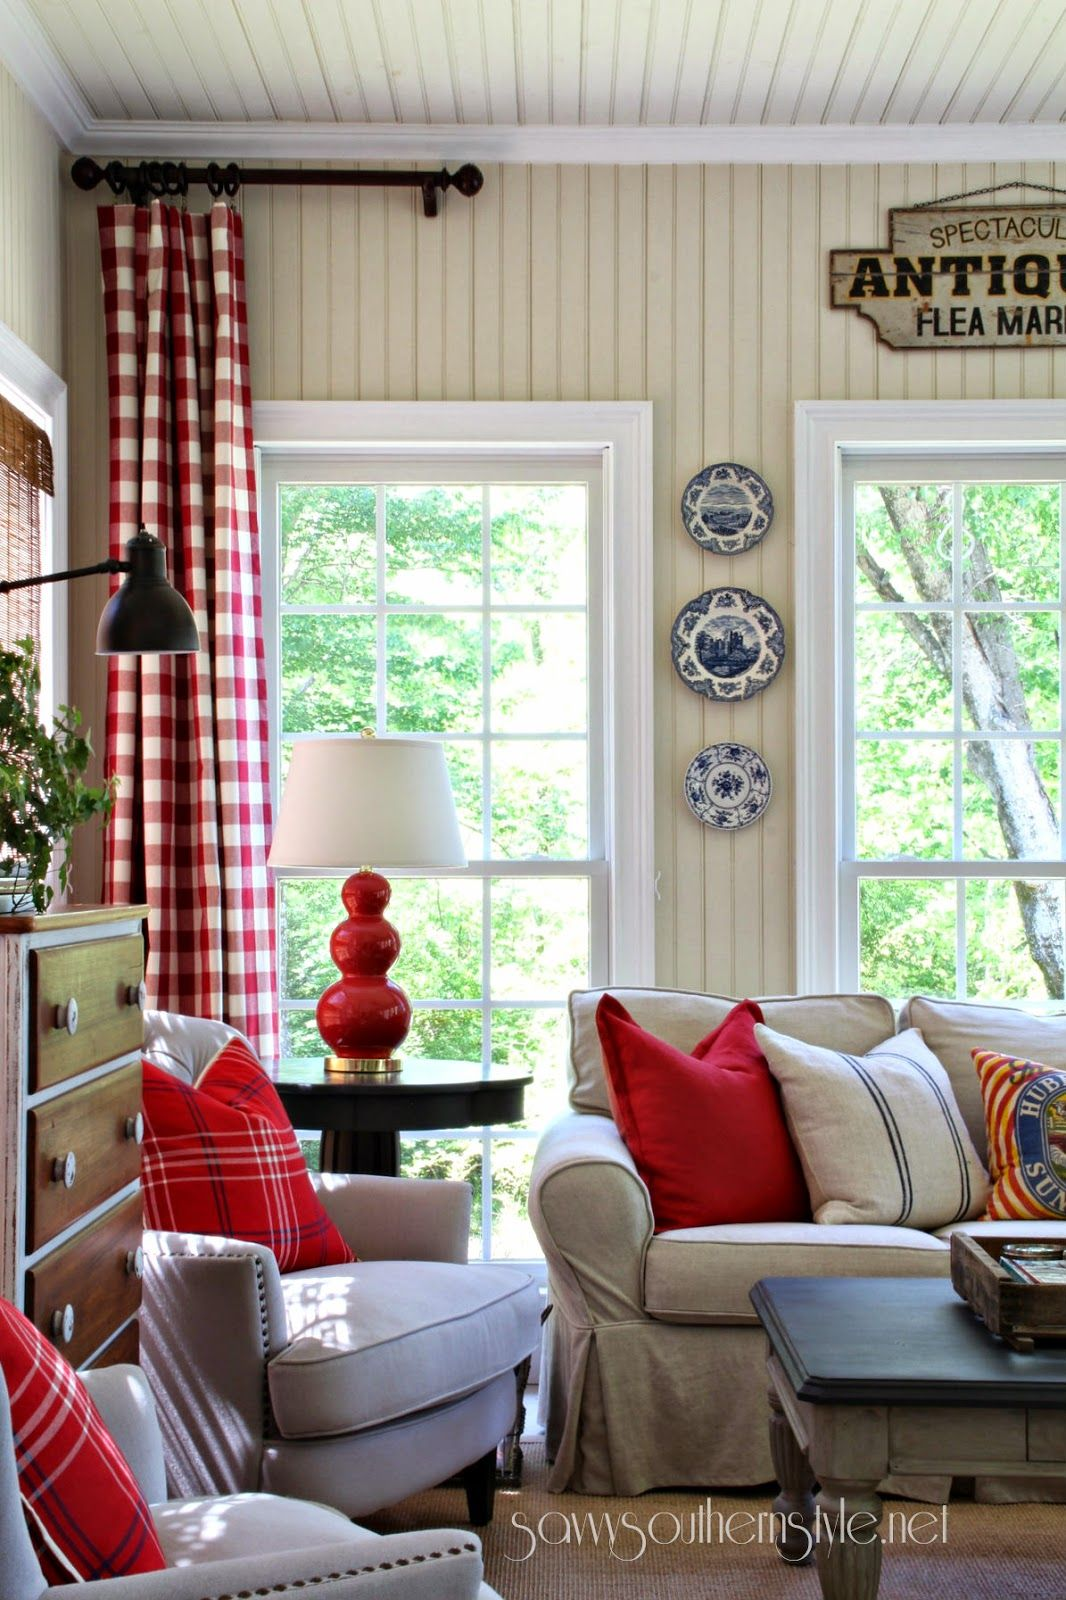 The Sun Room Spring 2014 Country Living Room Design Farm House Living Room French Country Living Room